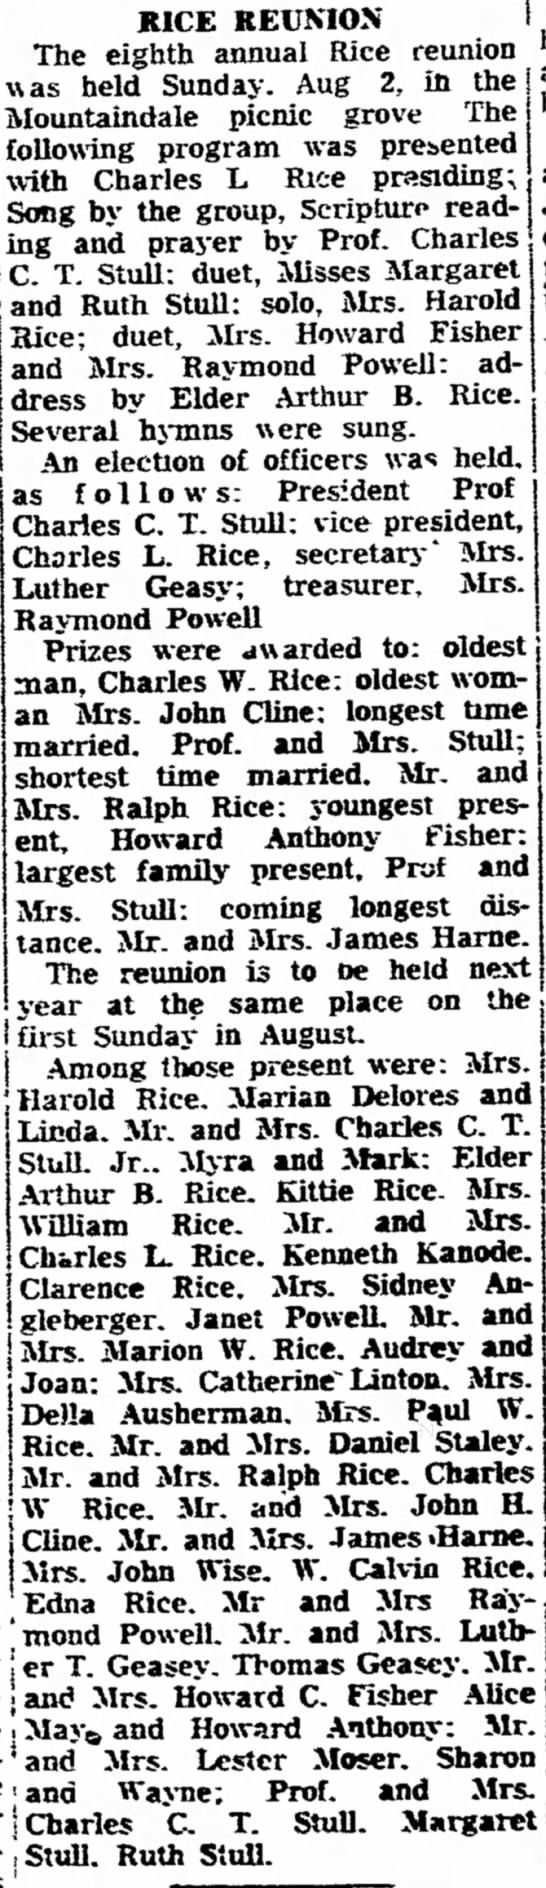 Found in The News in Frederick, Maryland on Tue, Aug 18, 1953.